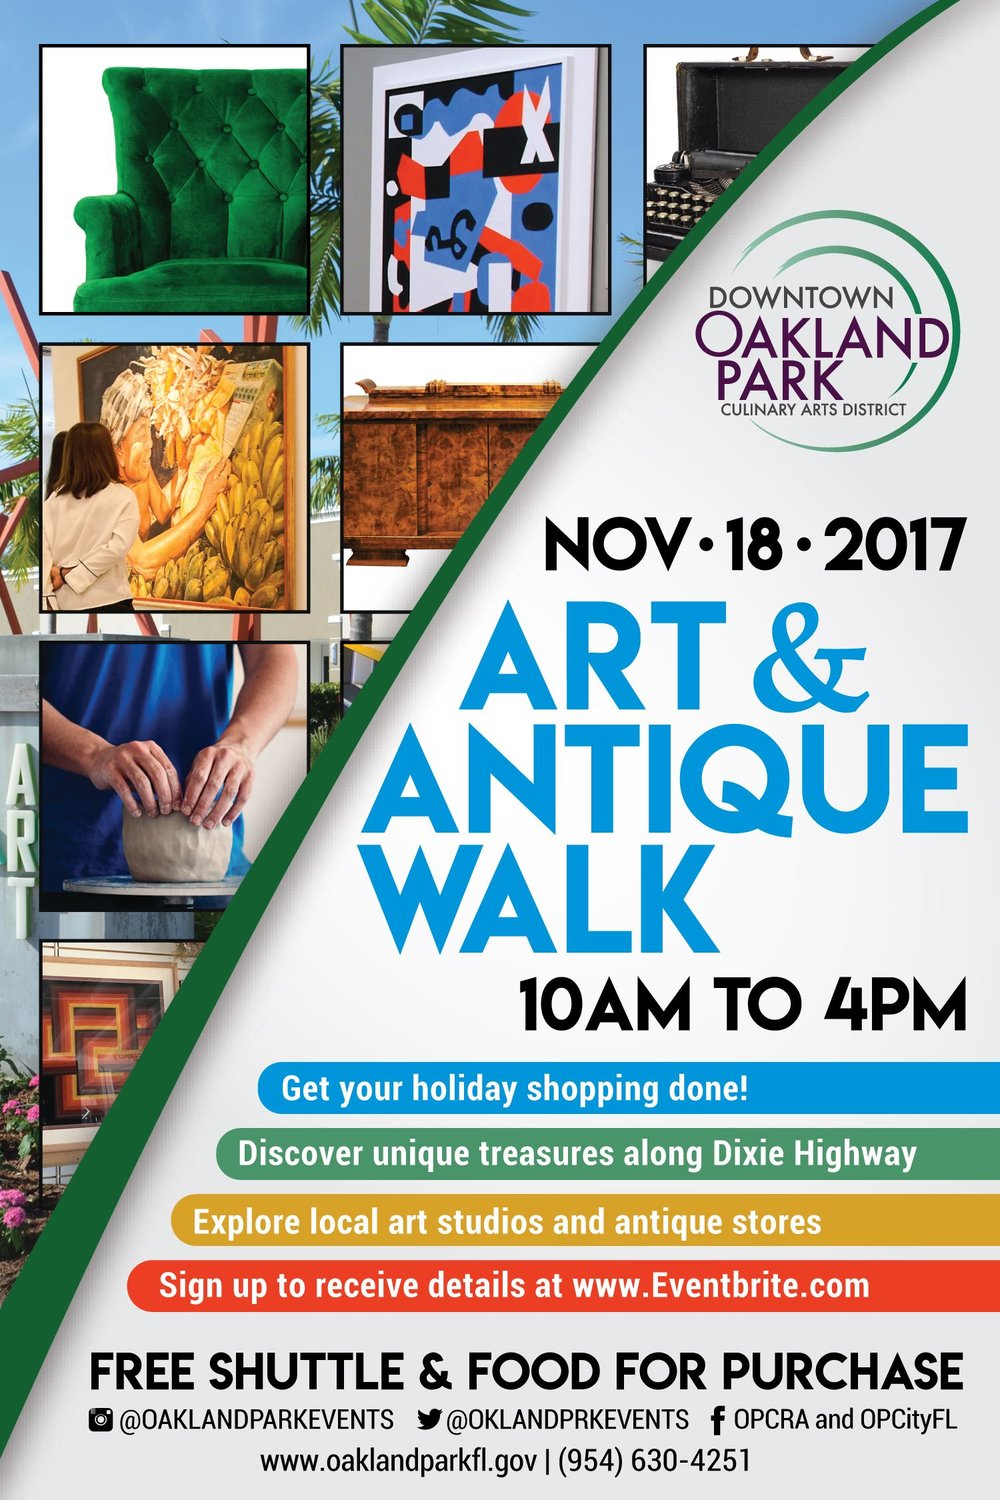 Art and Antique Walk 18 Nov 2017 City of Oakland Park.jpg